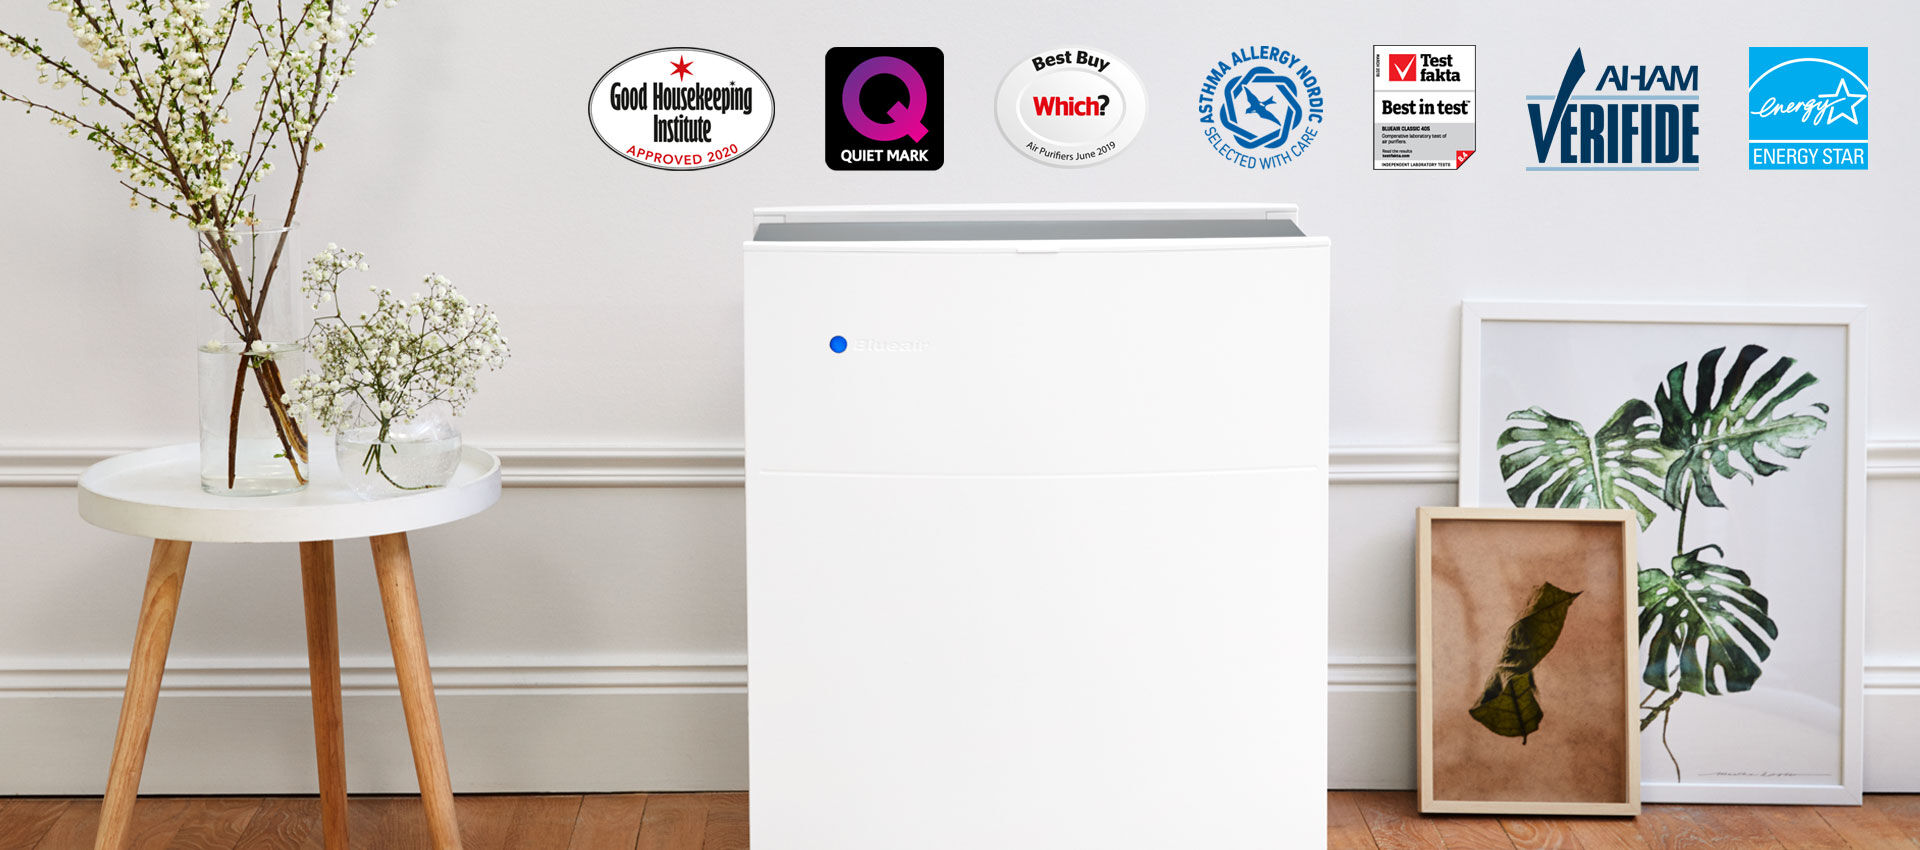 Blueair  Our most awarded air purifier  GB-classic-405-awards-banner